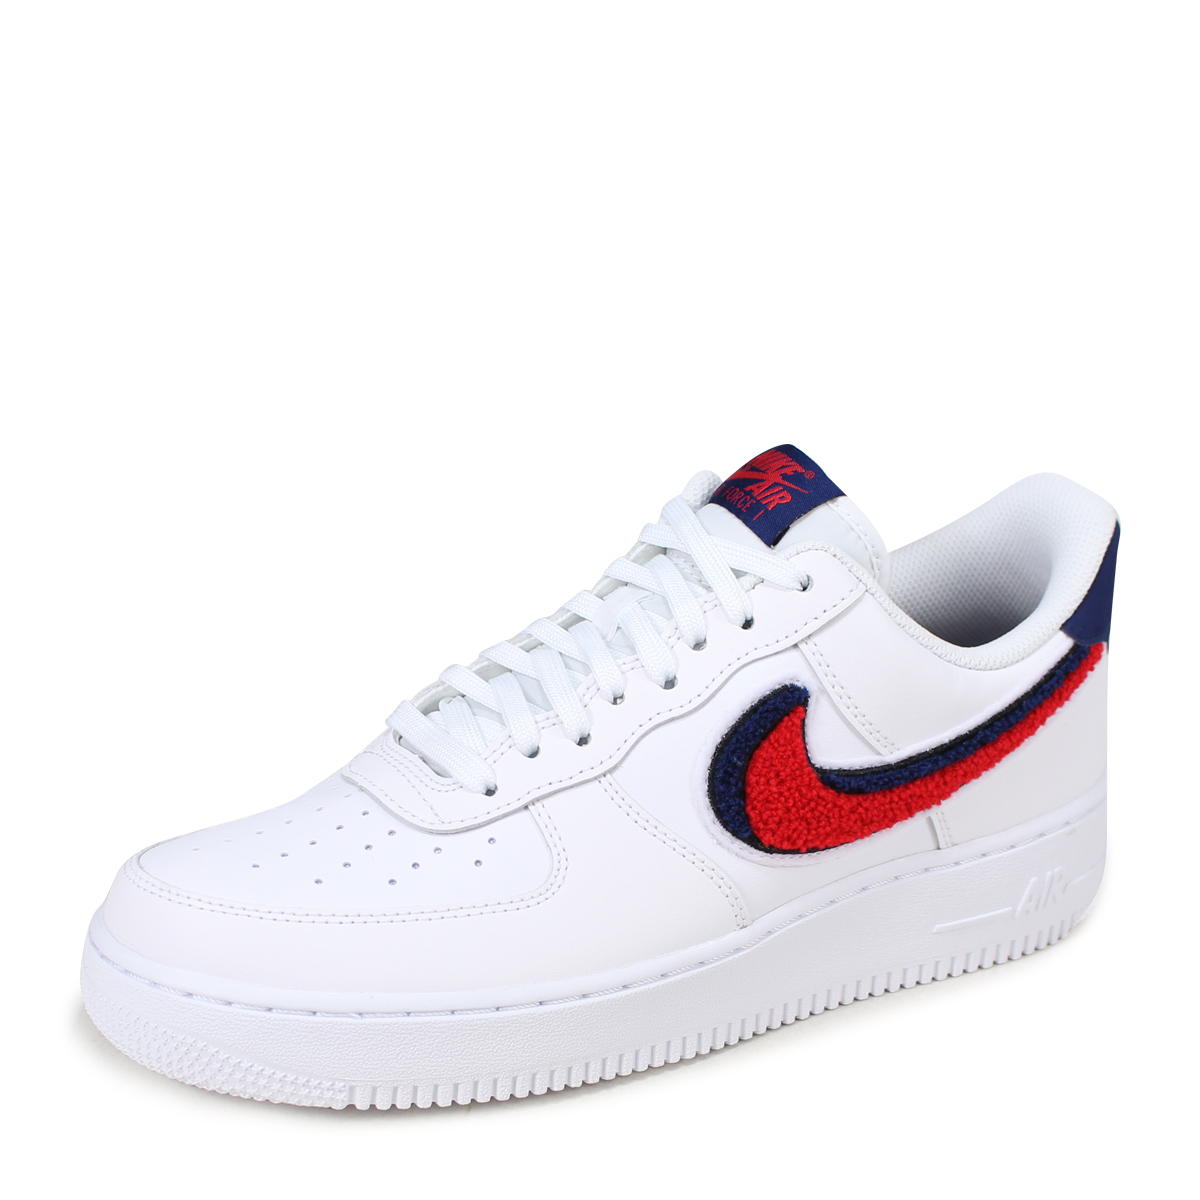 low priced 8ec76 5a697 NIKE AIR FORCE 1 07 LV8 Nike air force 1 sneakers men 823,511-106 white   load planned Shinnyu load in reservation product 6 28 containing   186